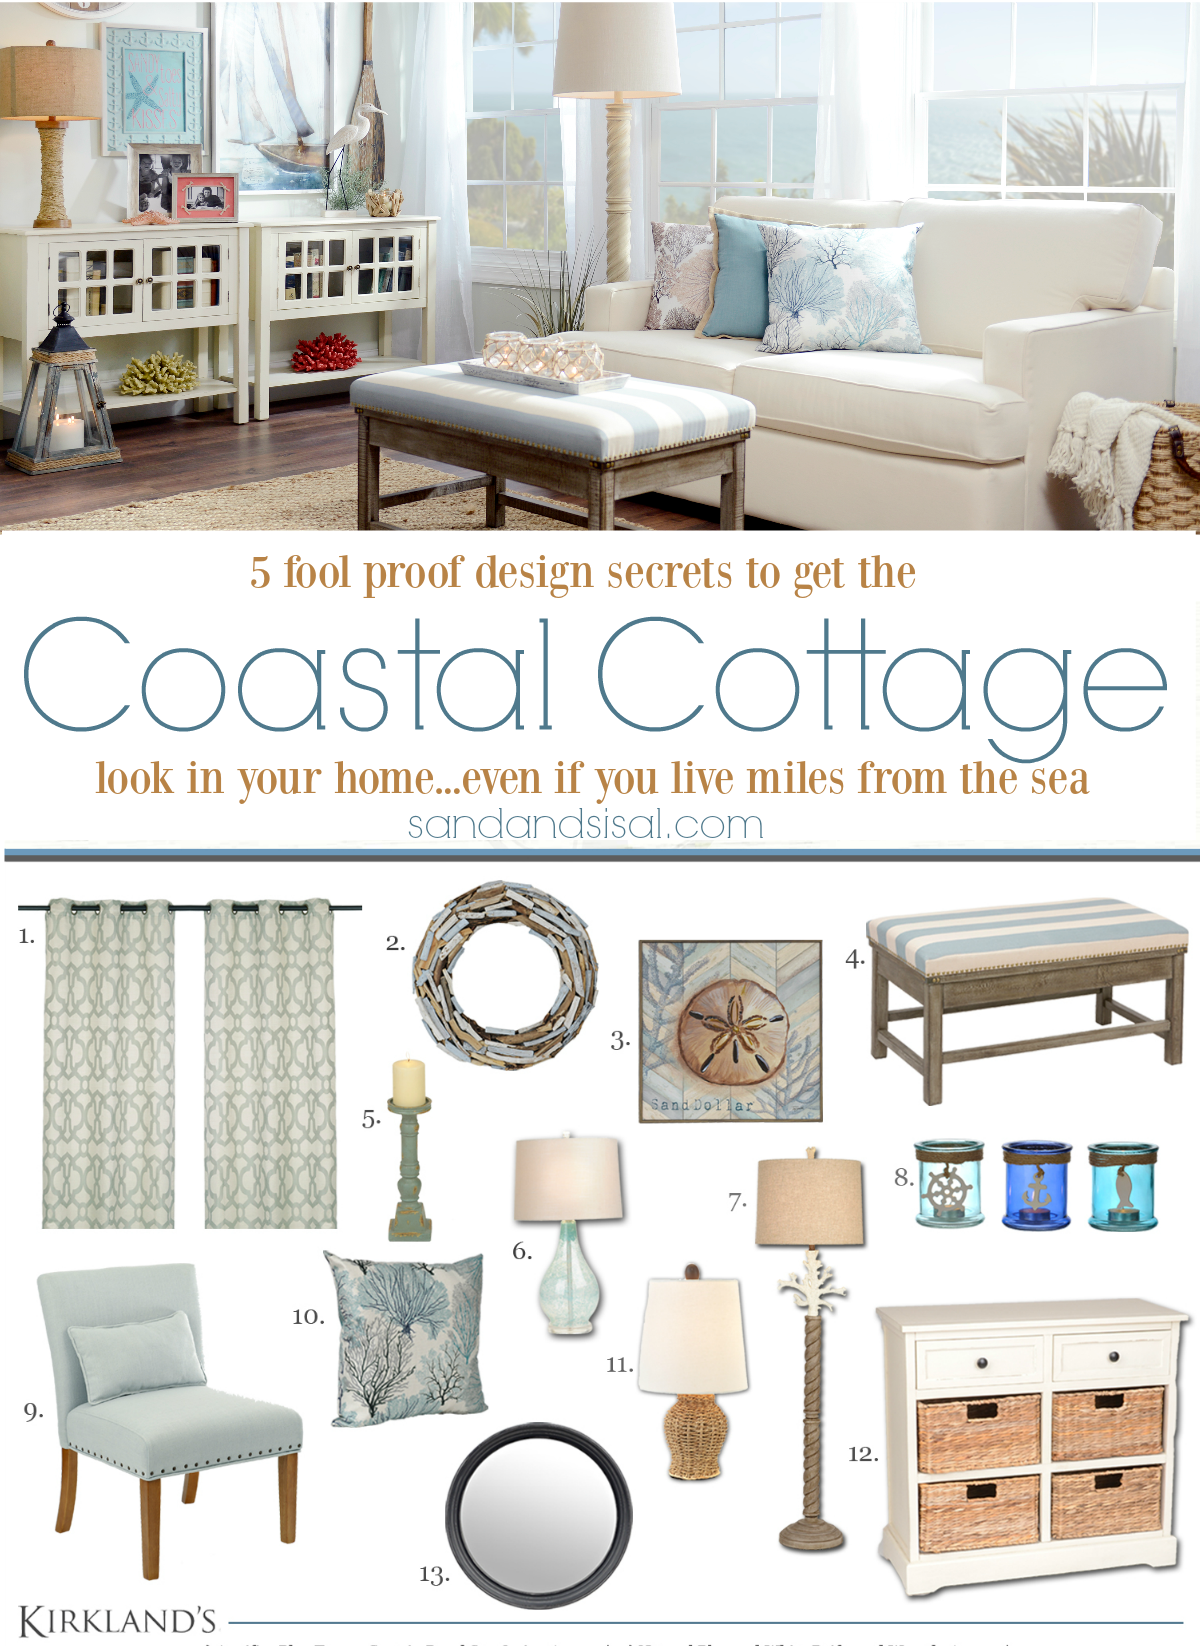 Get These 5 Easy And Fool Proof Design Secrets To The Coastal Cottage Look In